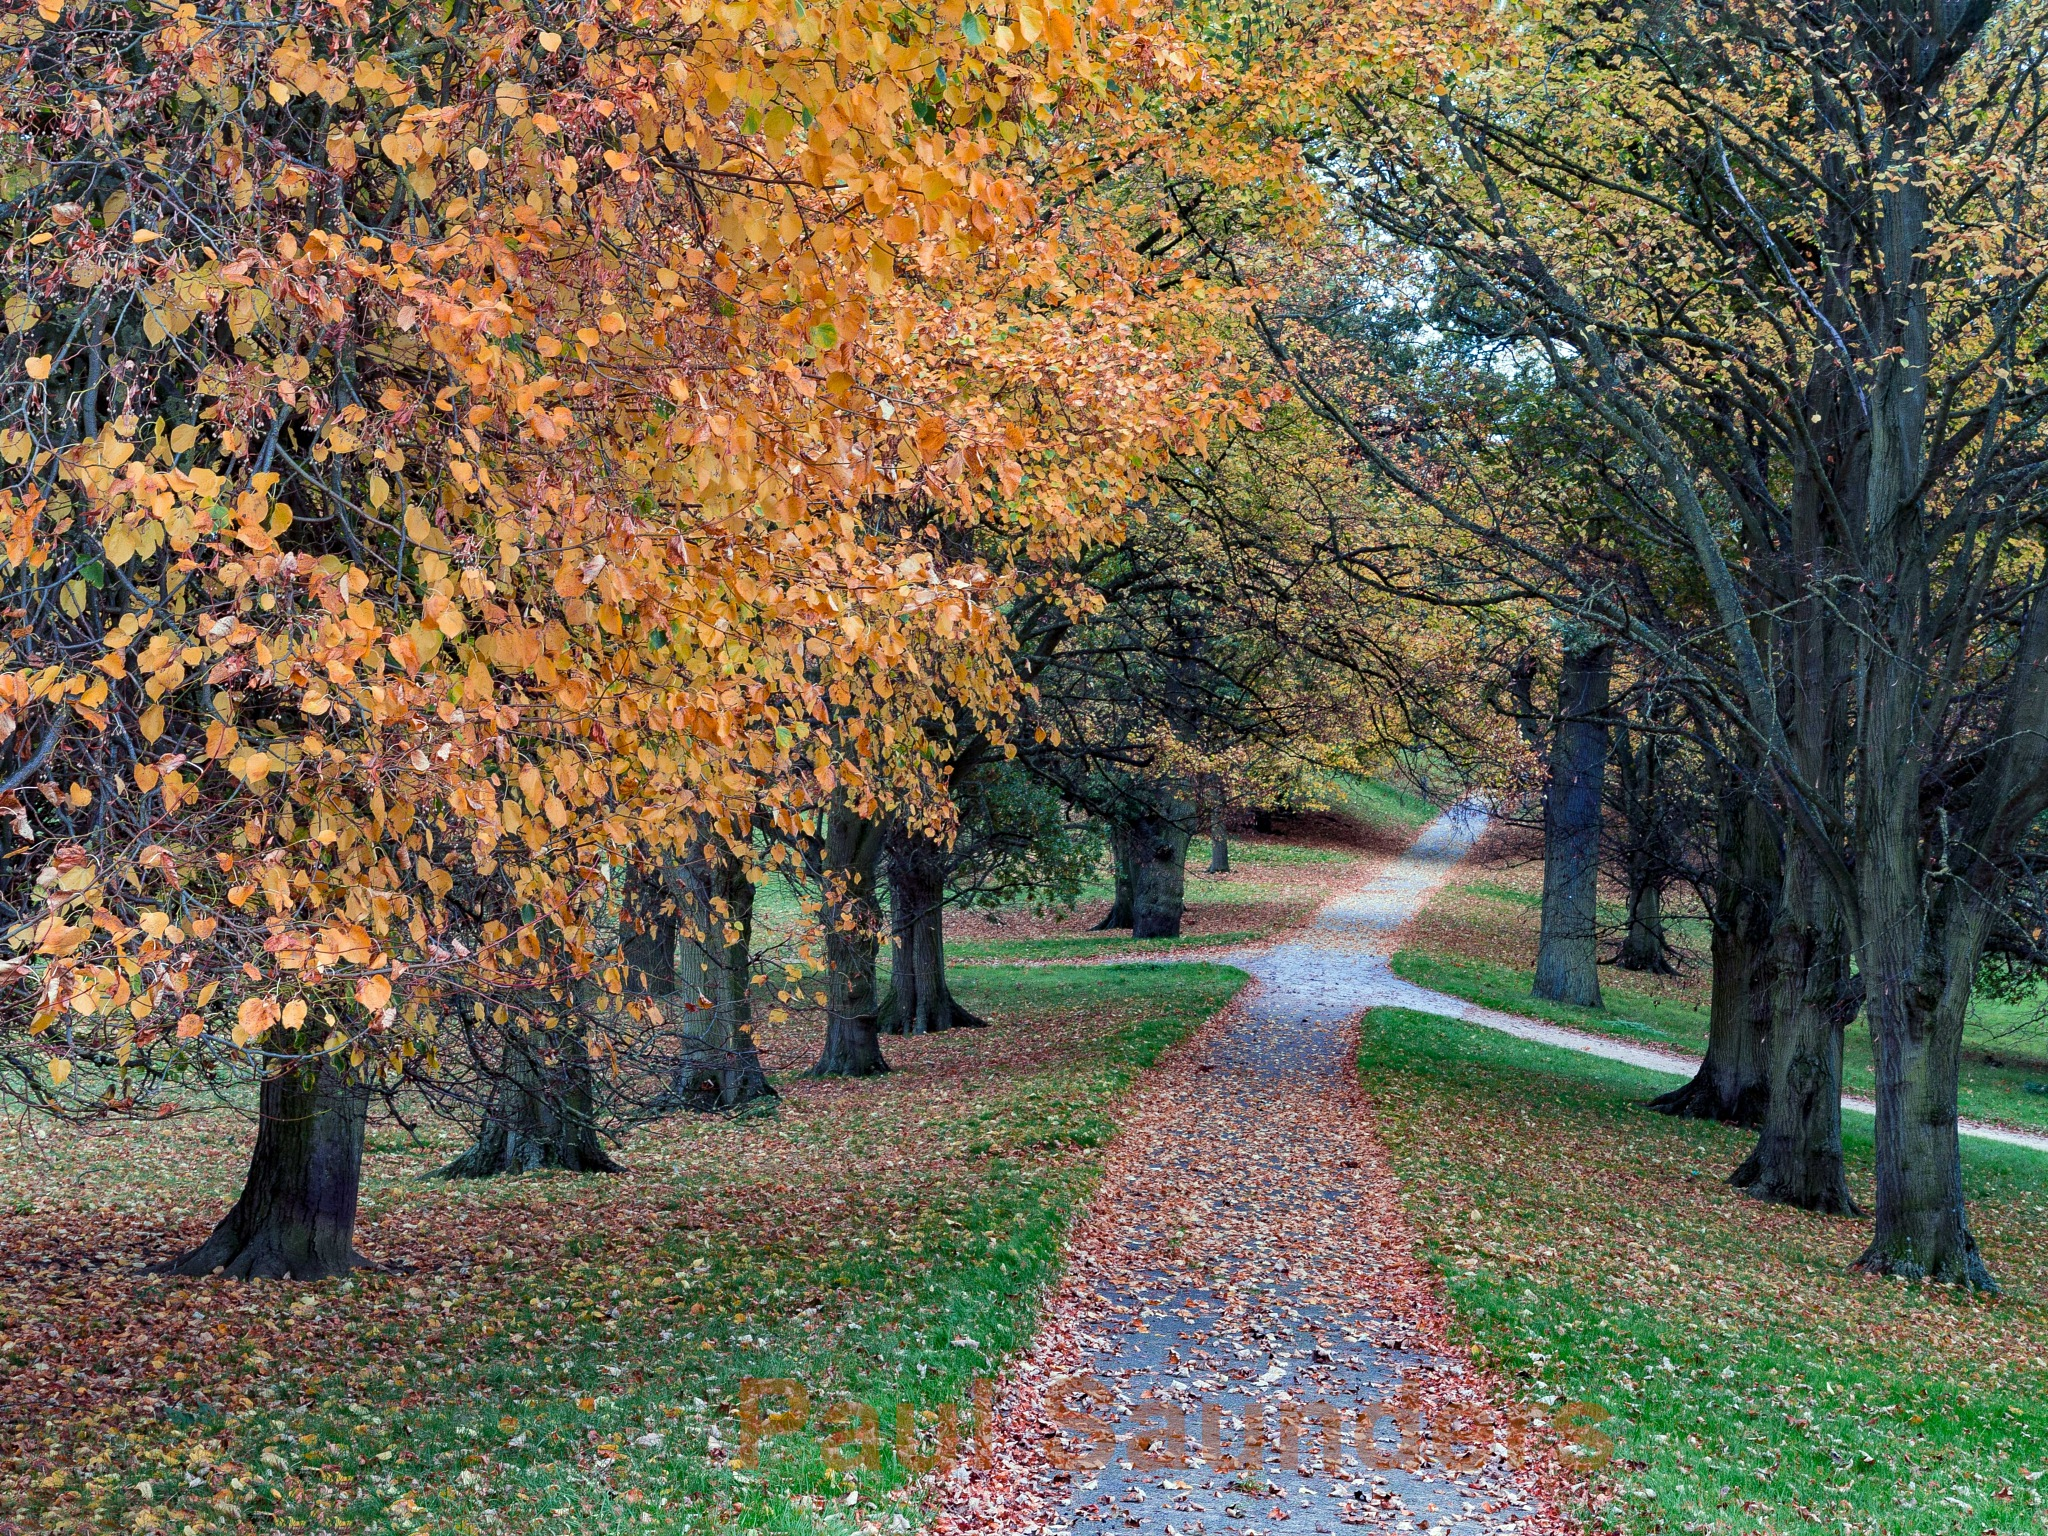 Autumn Leaves by Paul Saunders